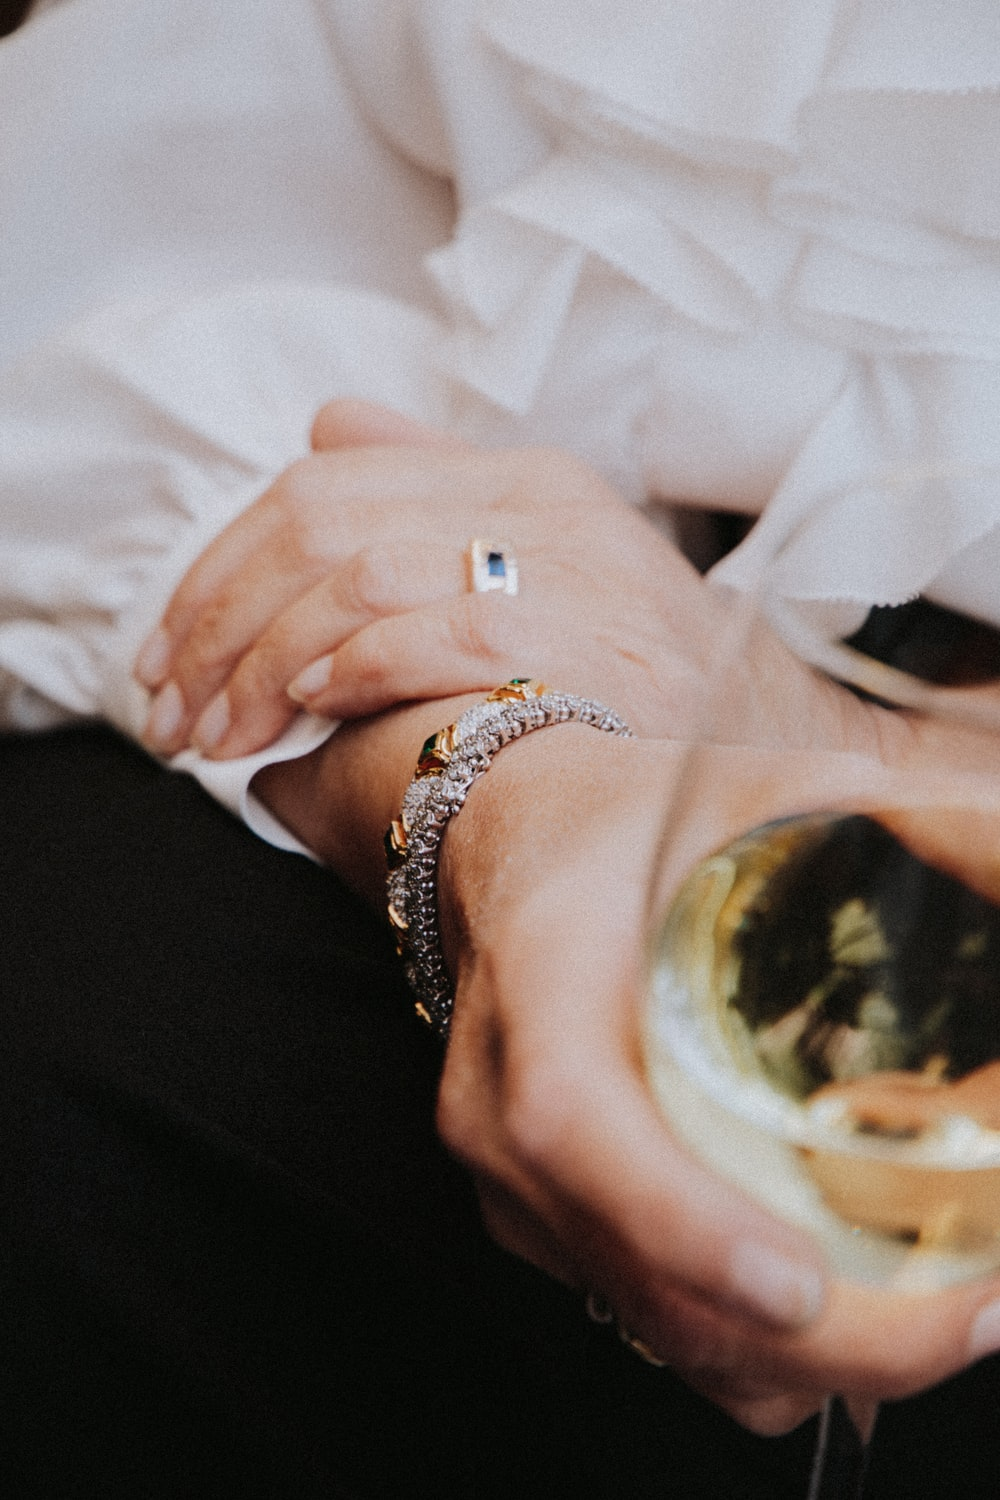 person wearing silver and gold ring